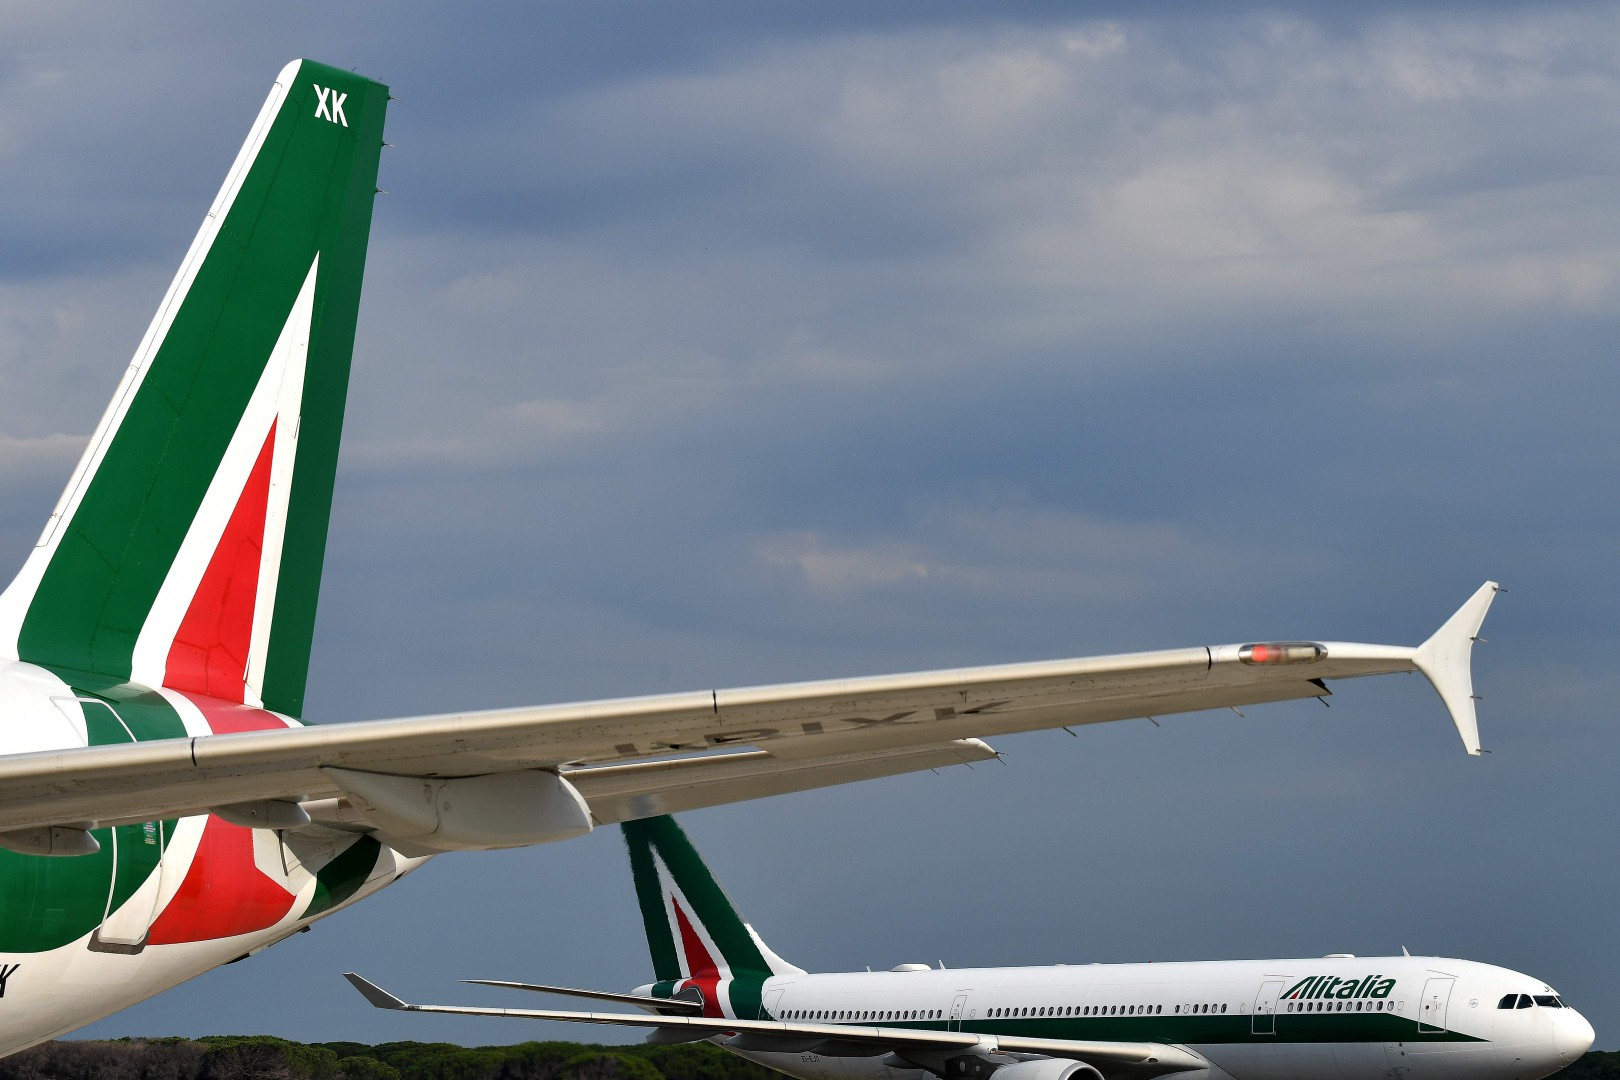 (FILES) In this file photo taken on June 21, 2018 two Alitalia airplanes are seen rolling on the tarmac at the Fiumicino Airport, in Rome. - Troubled Italian carrier Alitalia has received three takeover offers as part of its latest rescue efforts, the company said in a statement on October 31, 2018. The offers will be examined by Alitalia's external administrators before being passed on to Italy's ministry of economic development. (Photo by Alberto PIZZOLI / AFP)